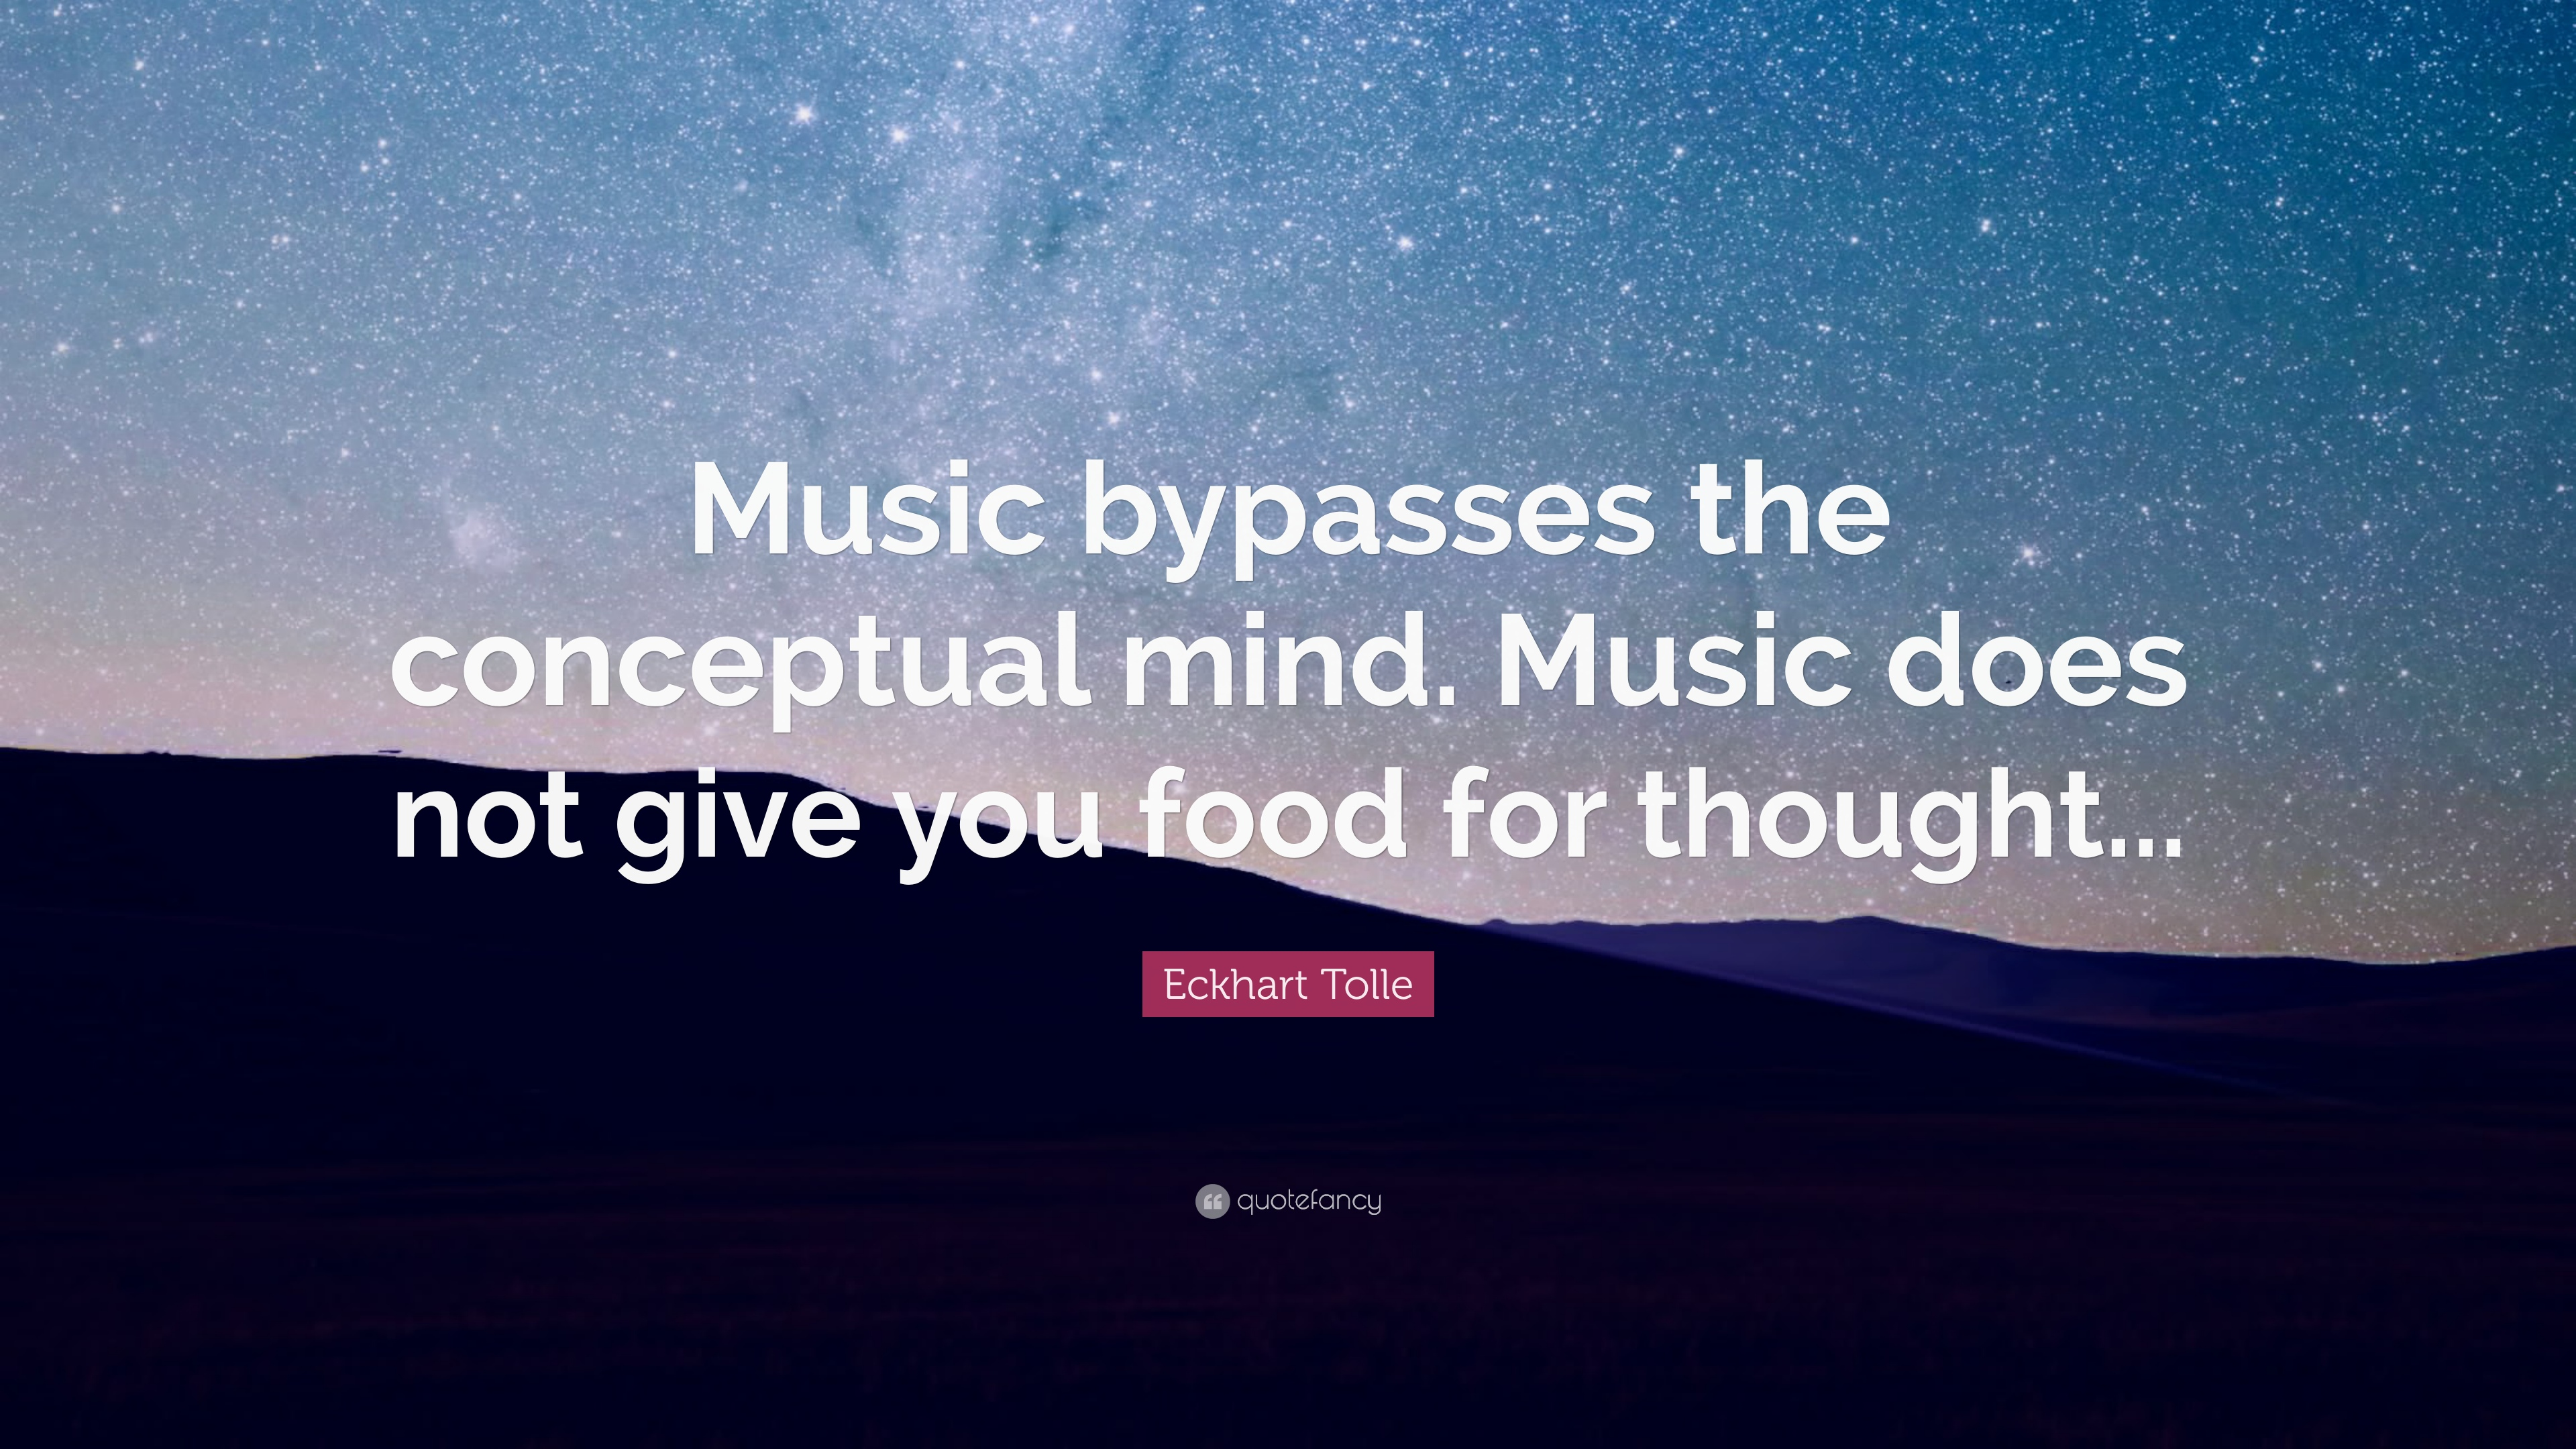 Top Wallpaper Music Food - 140774-Eckhart-Tolle-Quote-Music-bypasses-the-conceptual-mind-Music-does  Snapshot_151356.jpg